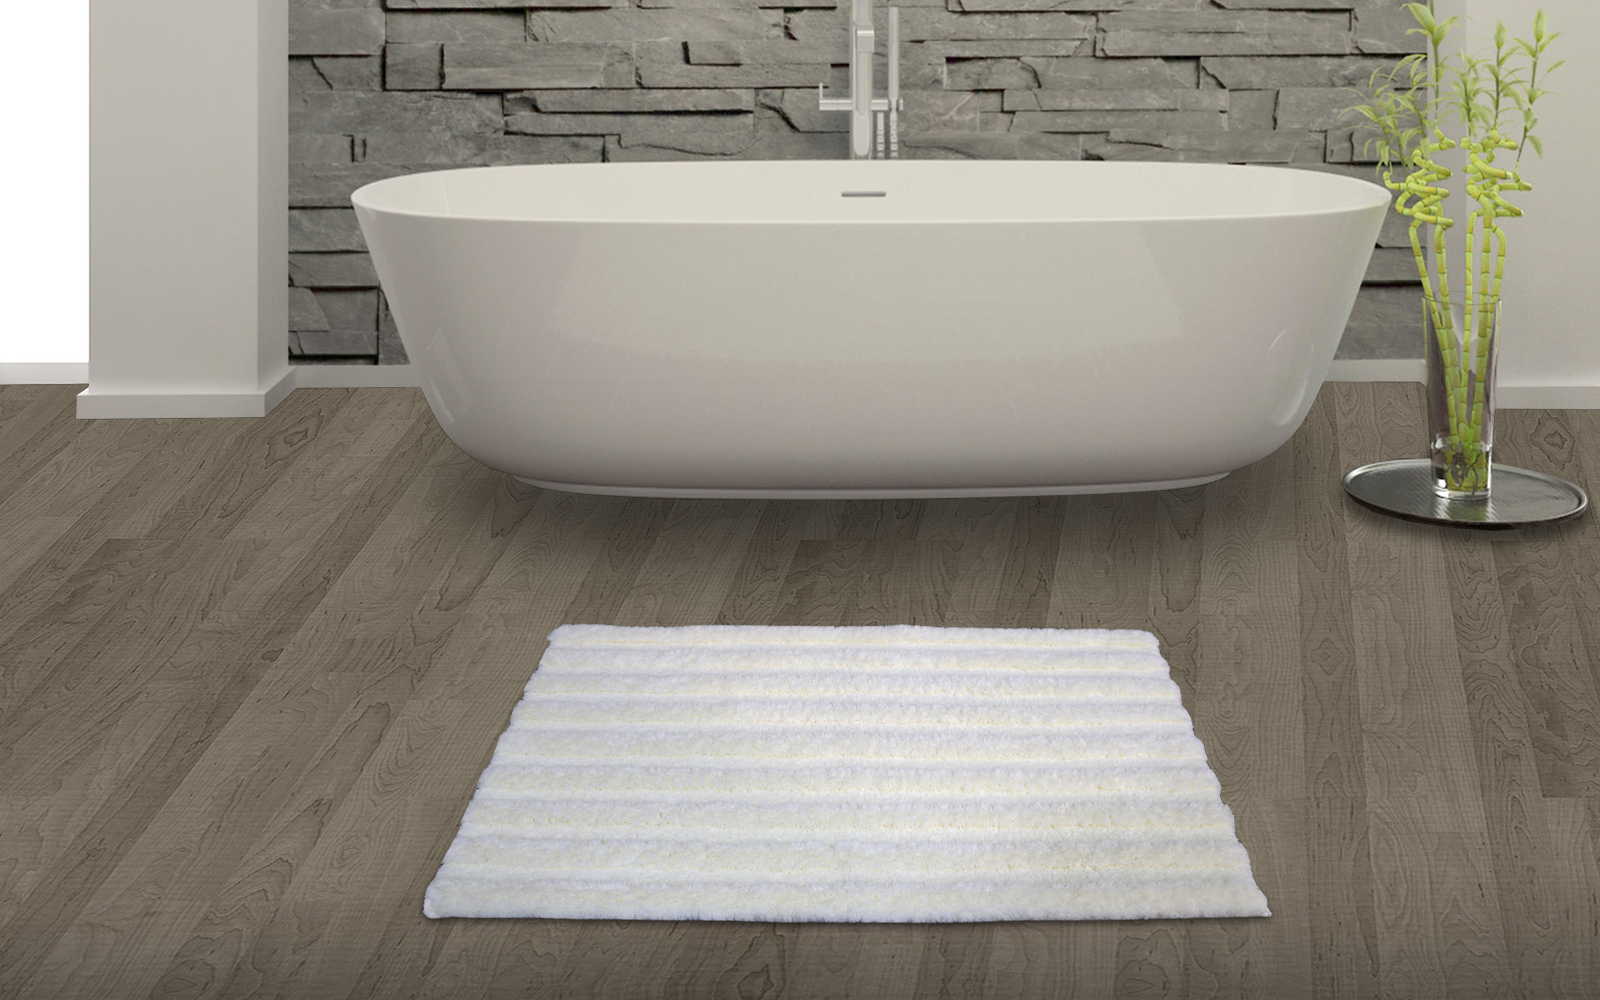 Spaces Swift Dry Pearl Bath - Small Cotton Bath Mats in Multicolour Colour by Spaces